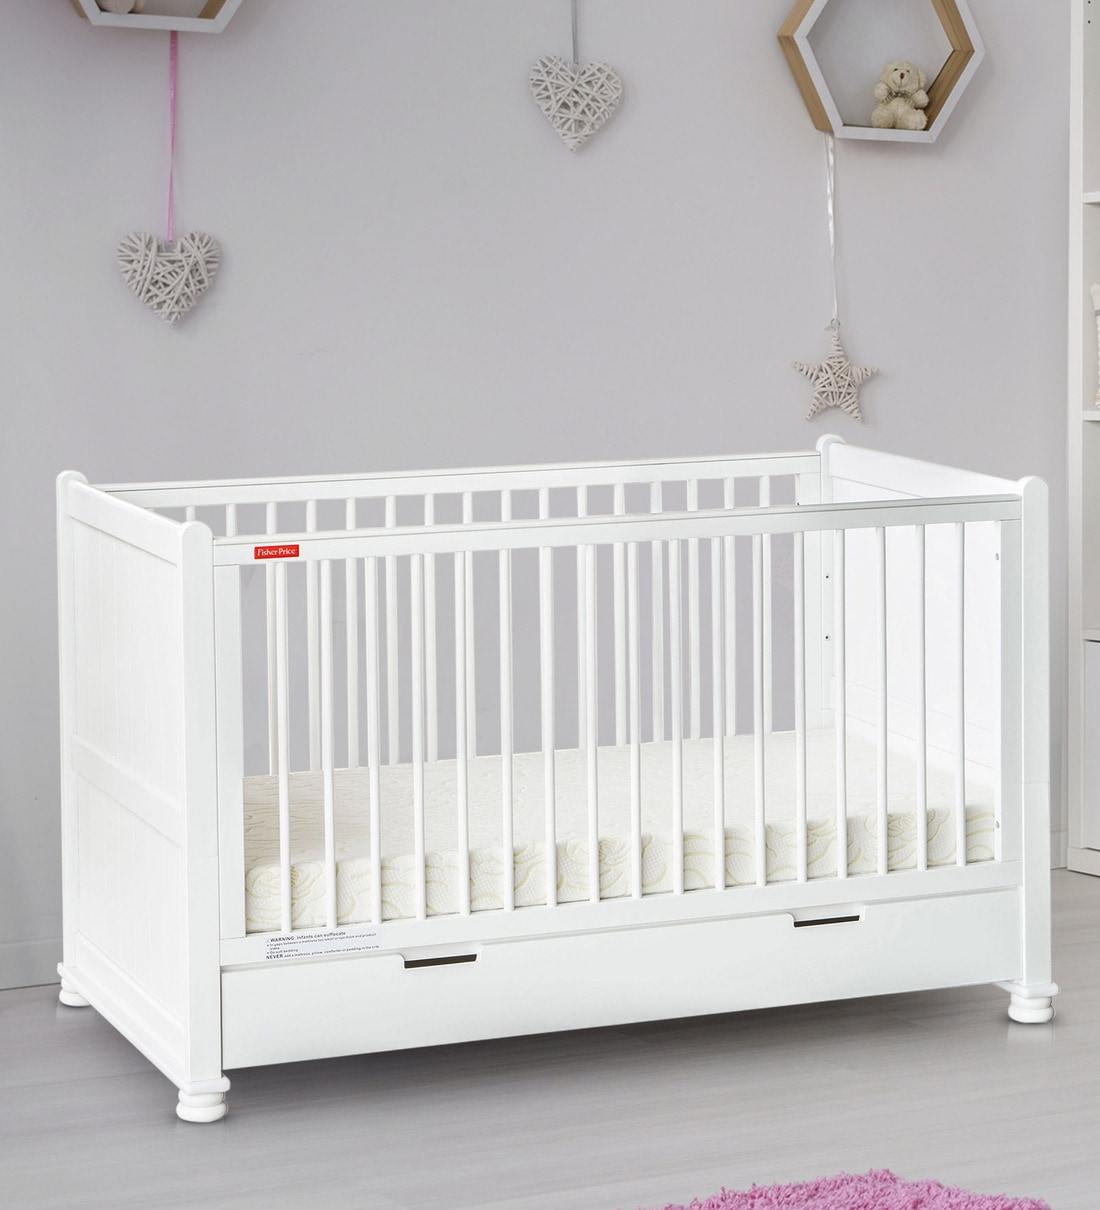 Buy Georgia Crib Cum Toddler Bed Without Mattress In White By Fisher Price Online Cribs Cribs Kids Furniture Pepperfry Product